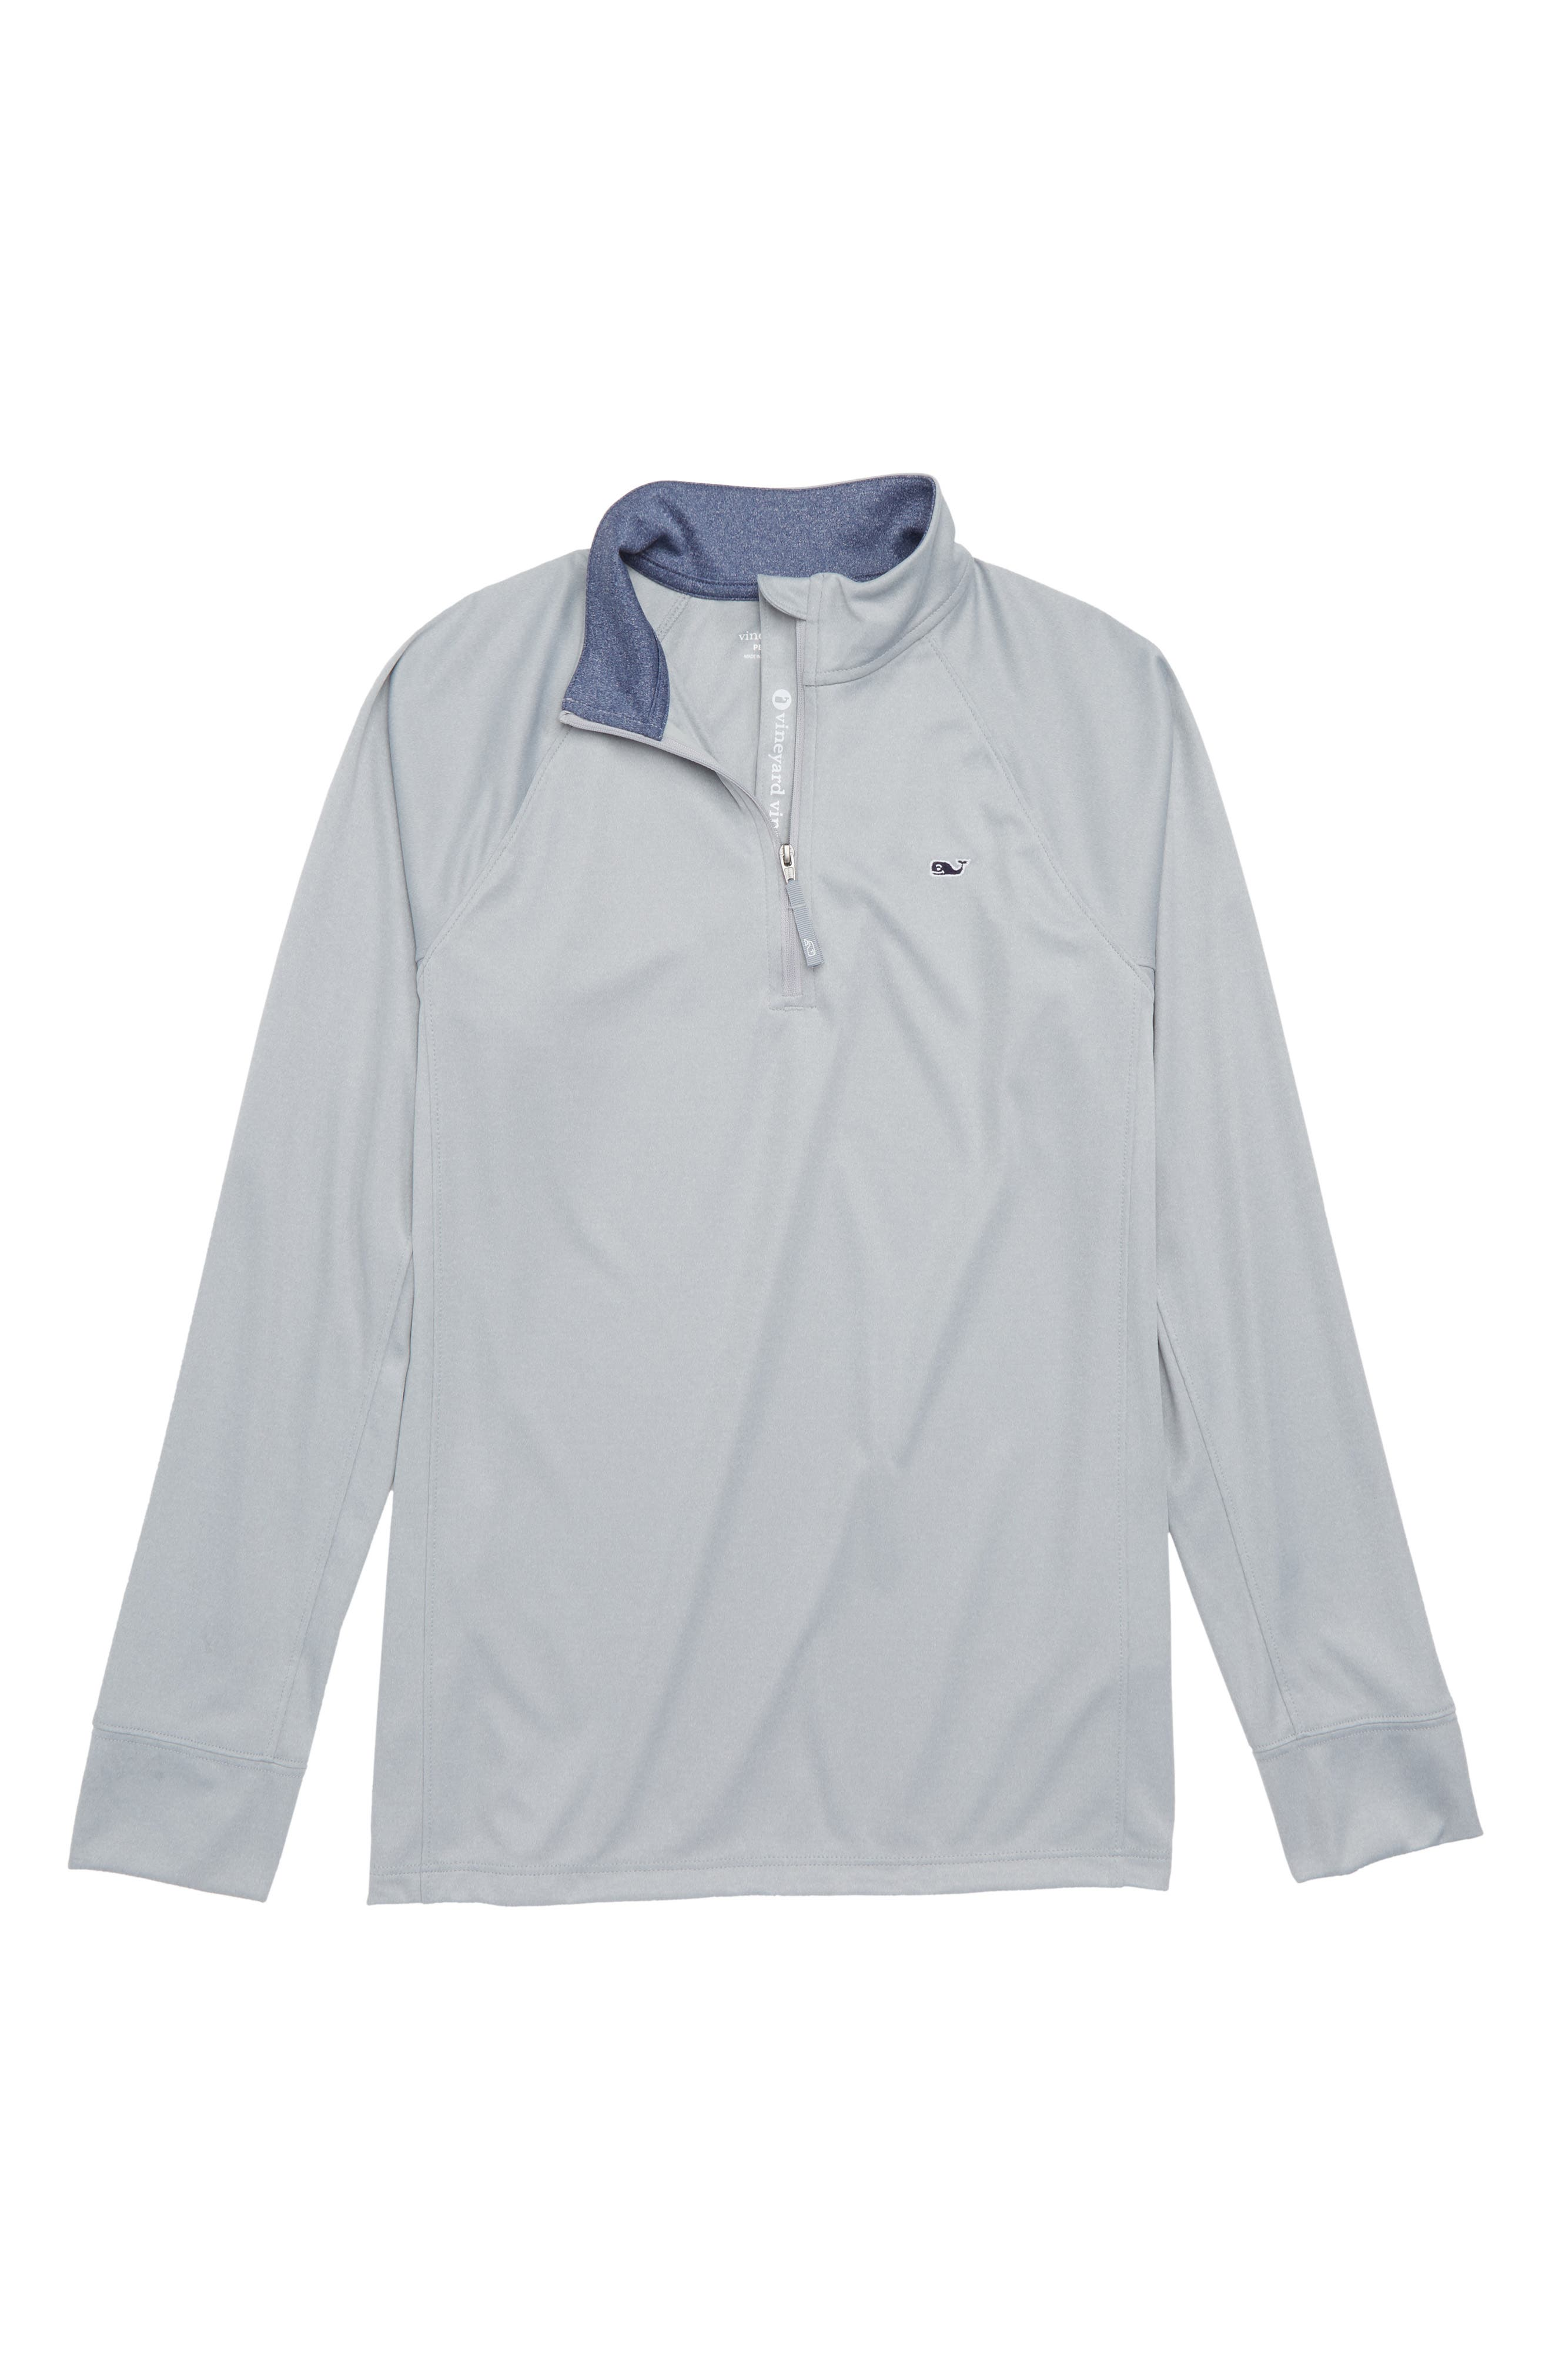 Performance Pullover,                             Main thumbnail 1, color,                             034